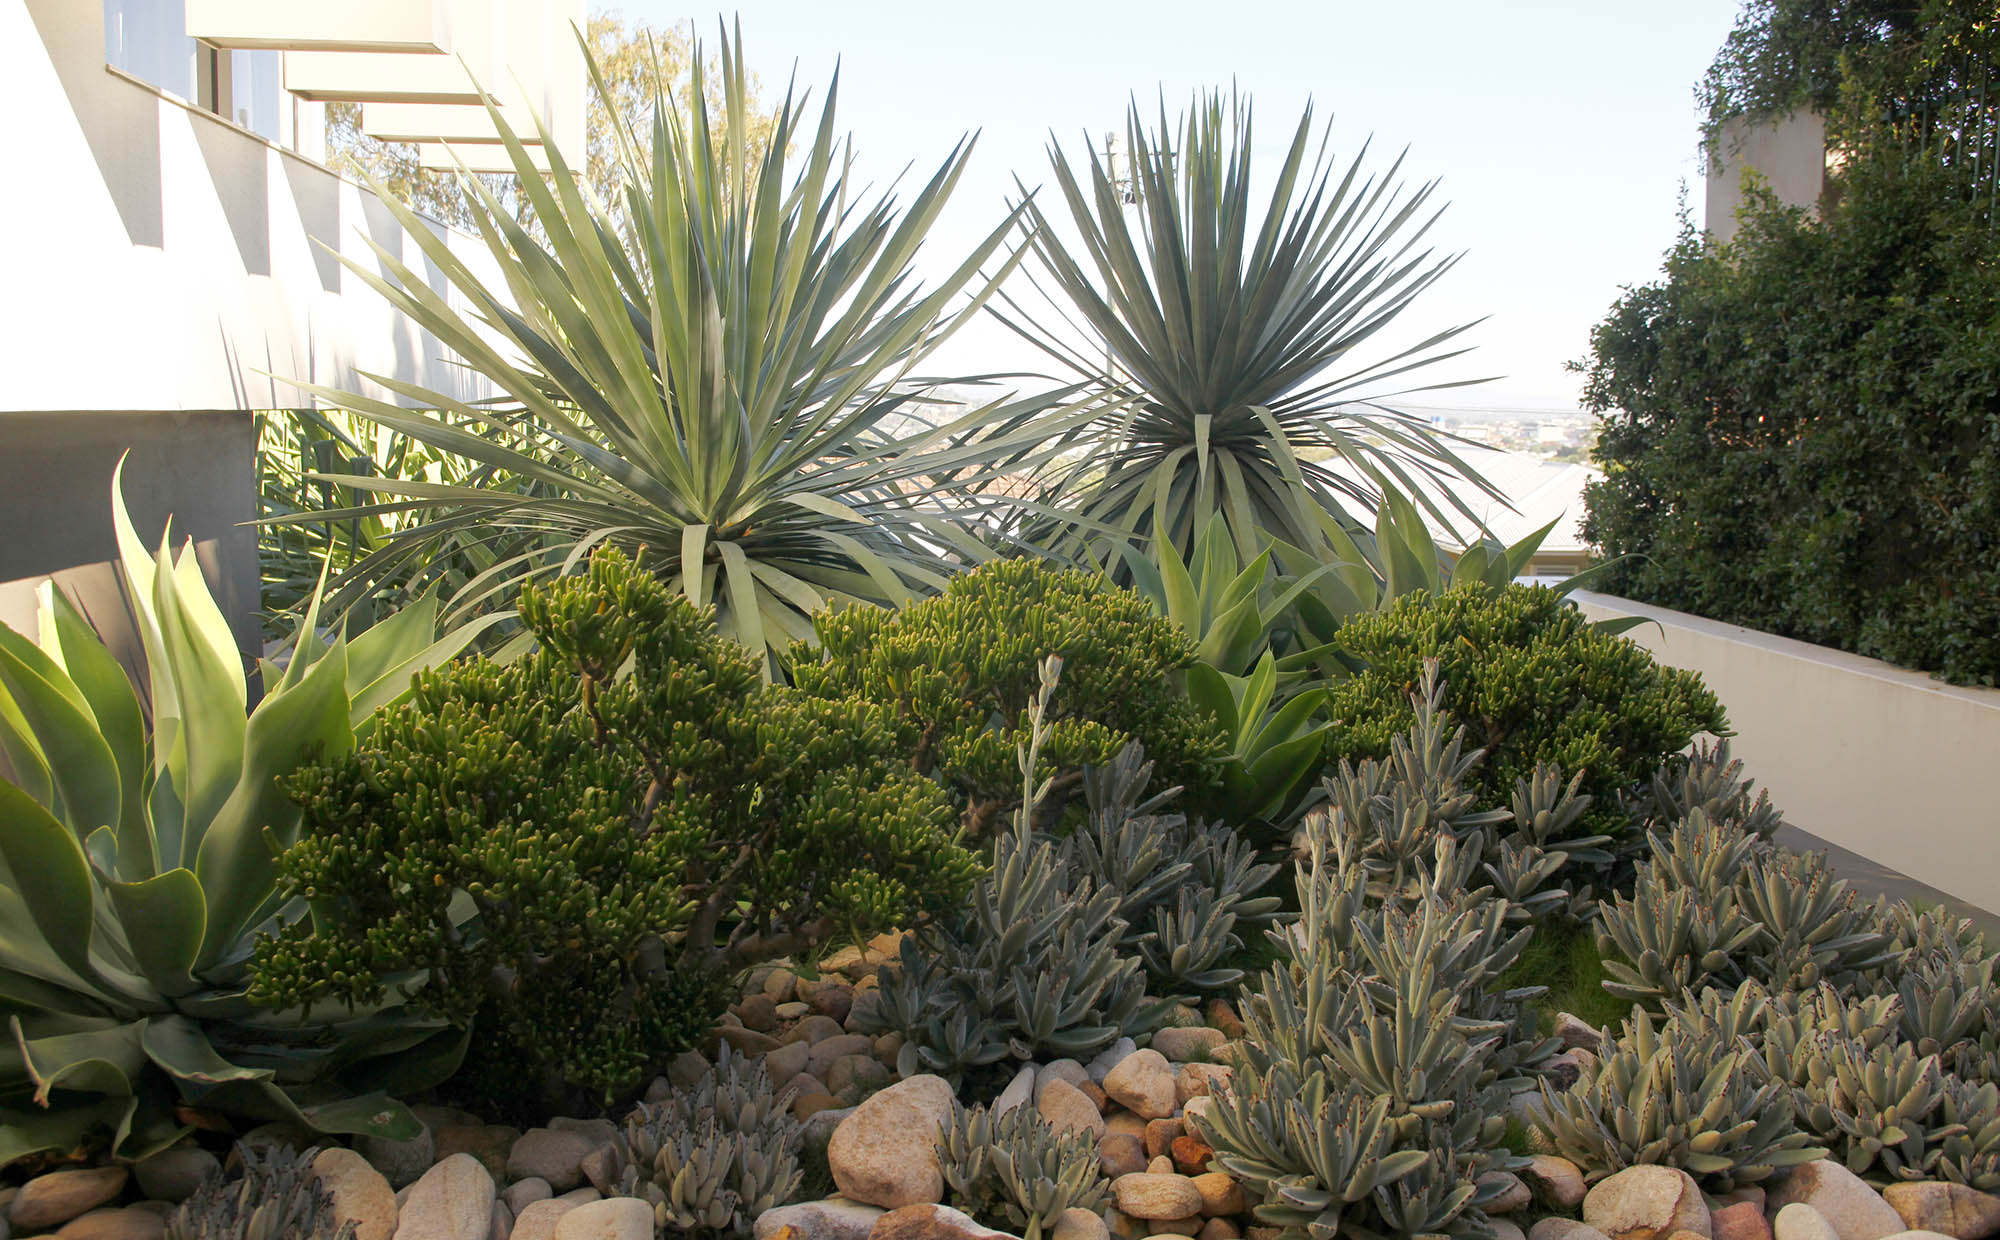 succulent garden with agave, panda plant, dragontree and decorative rocks